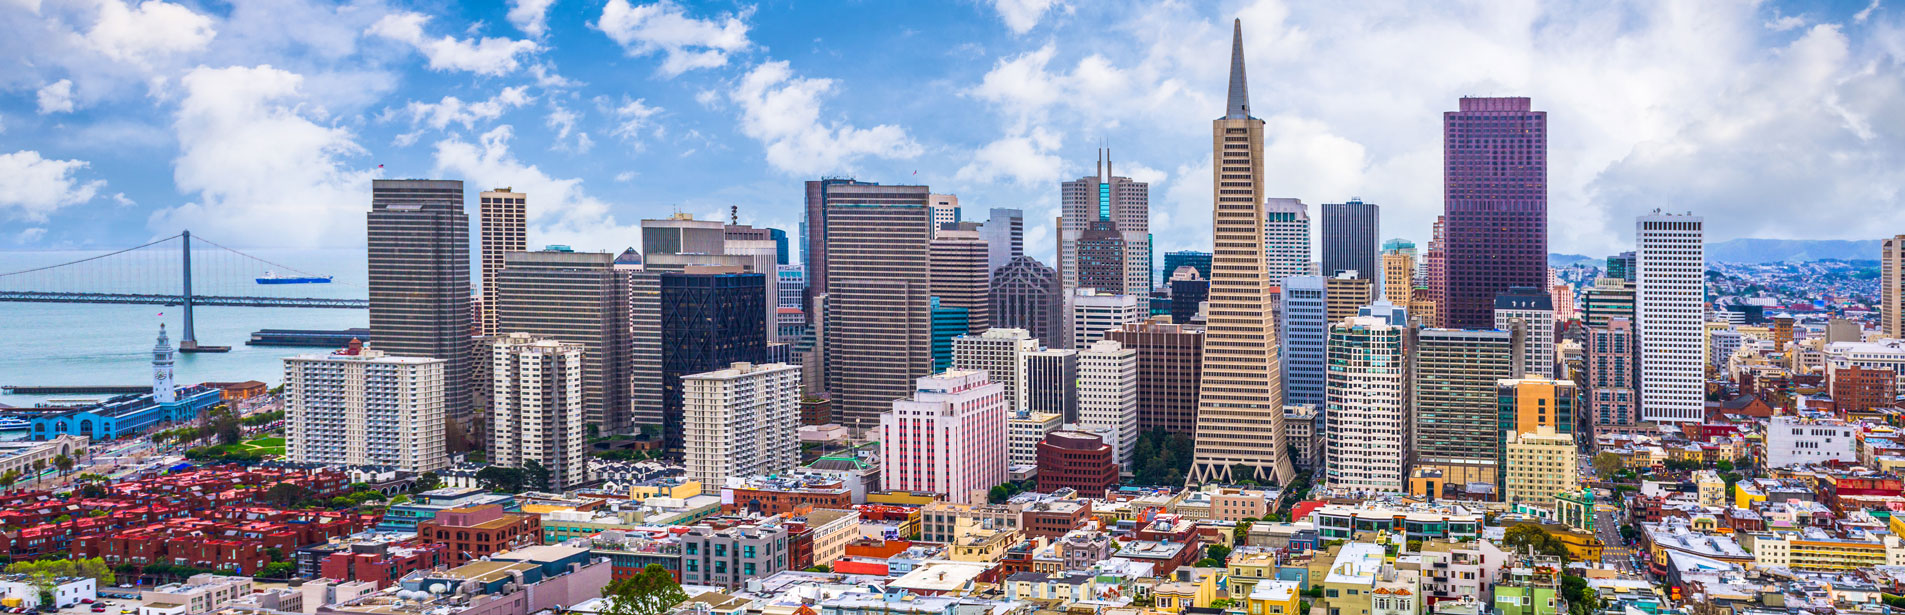 daytime image of the San Francisco skyline looking north to downtown